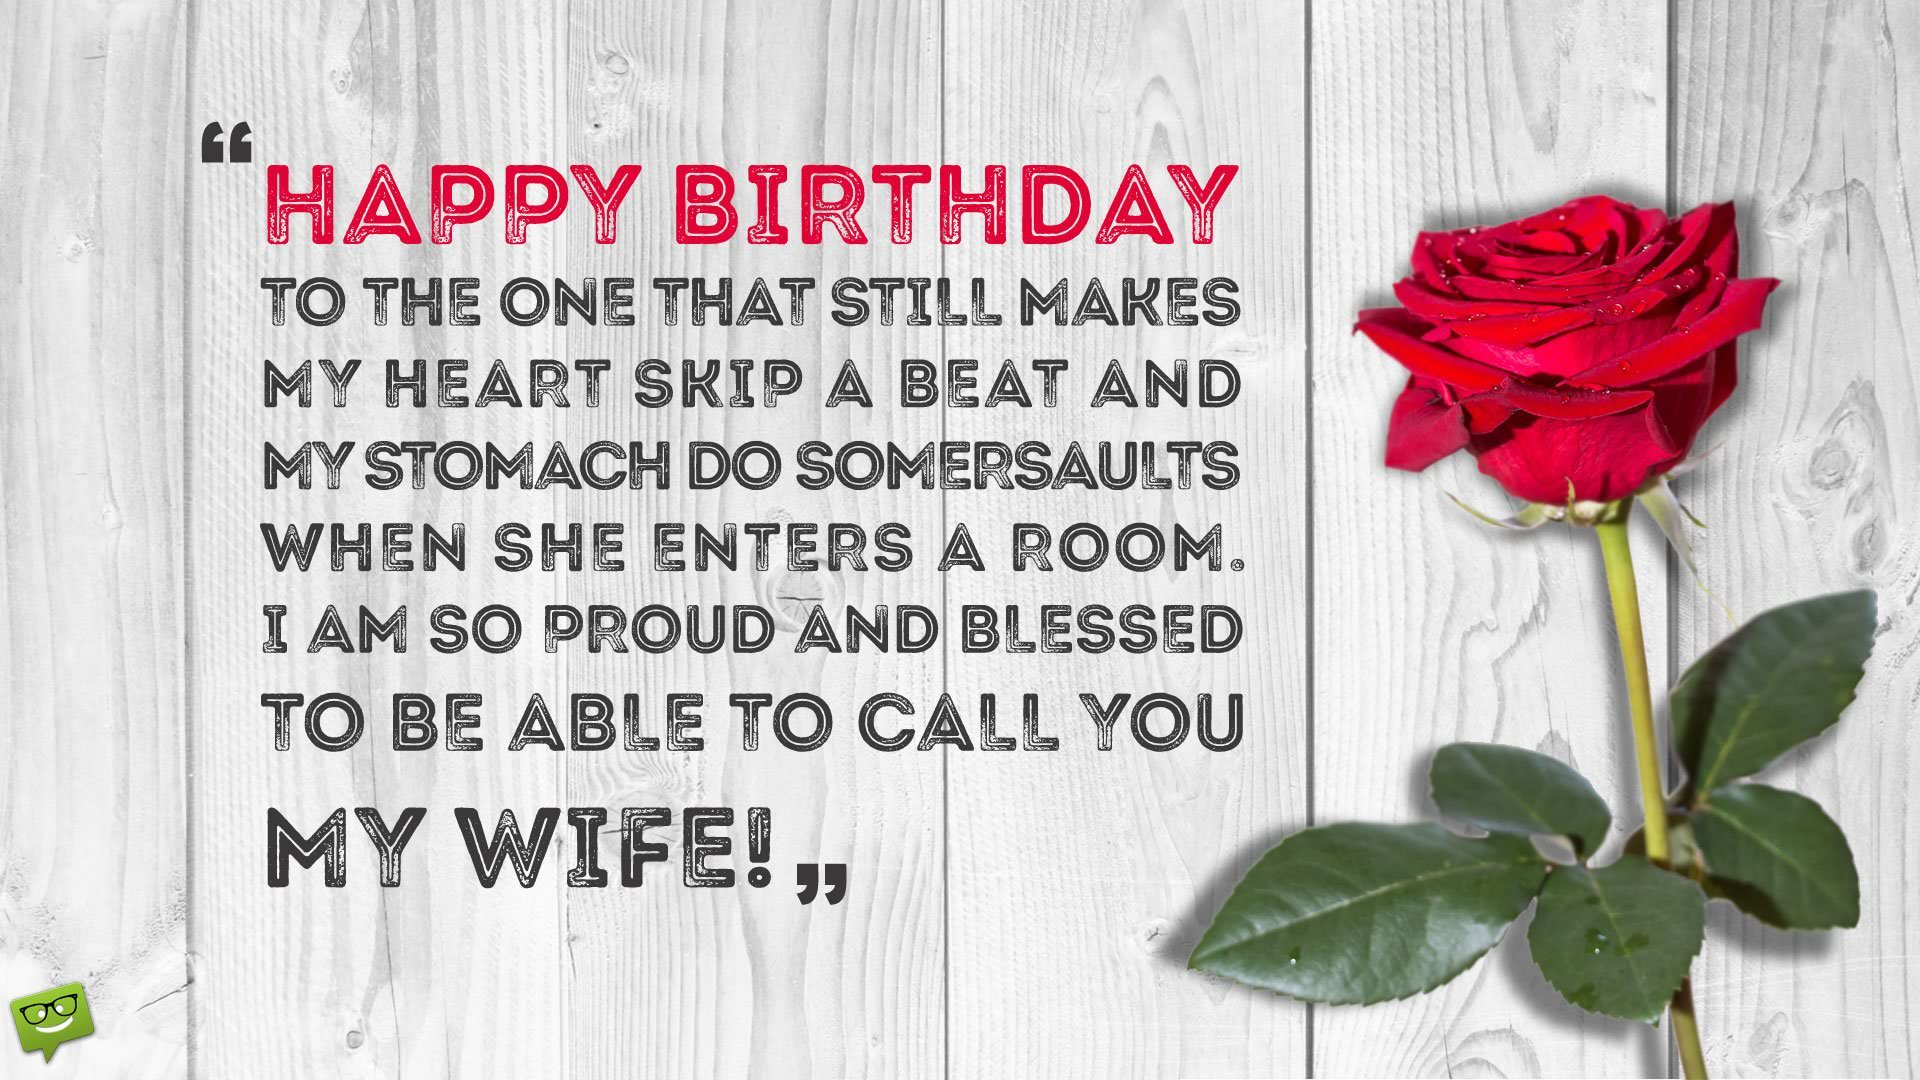 220 Birthday Wishes Your Wife Would Appreciate